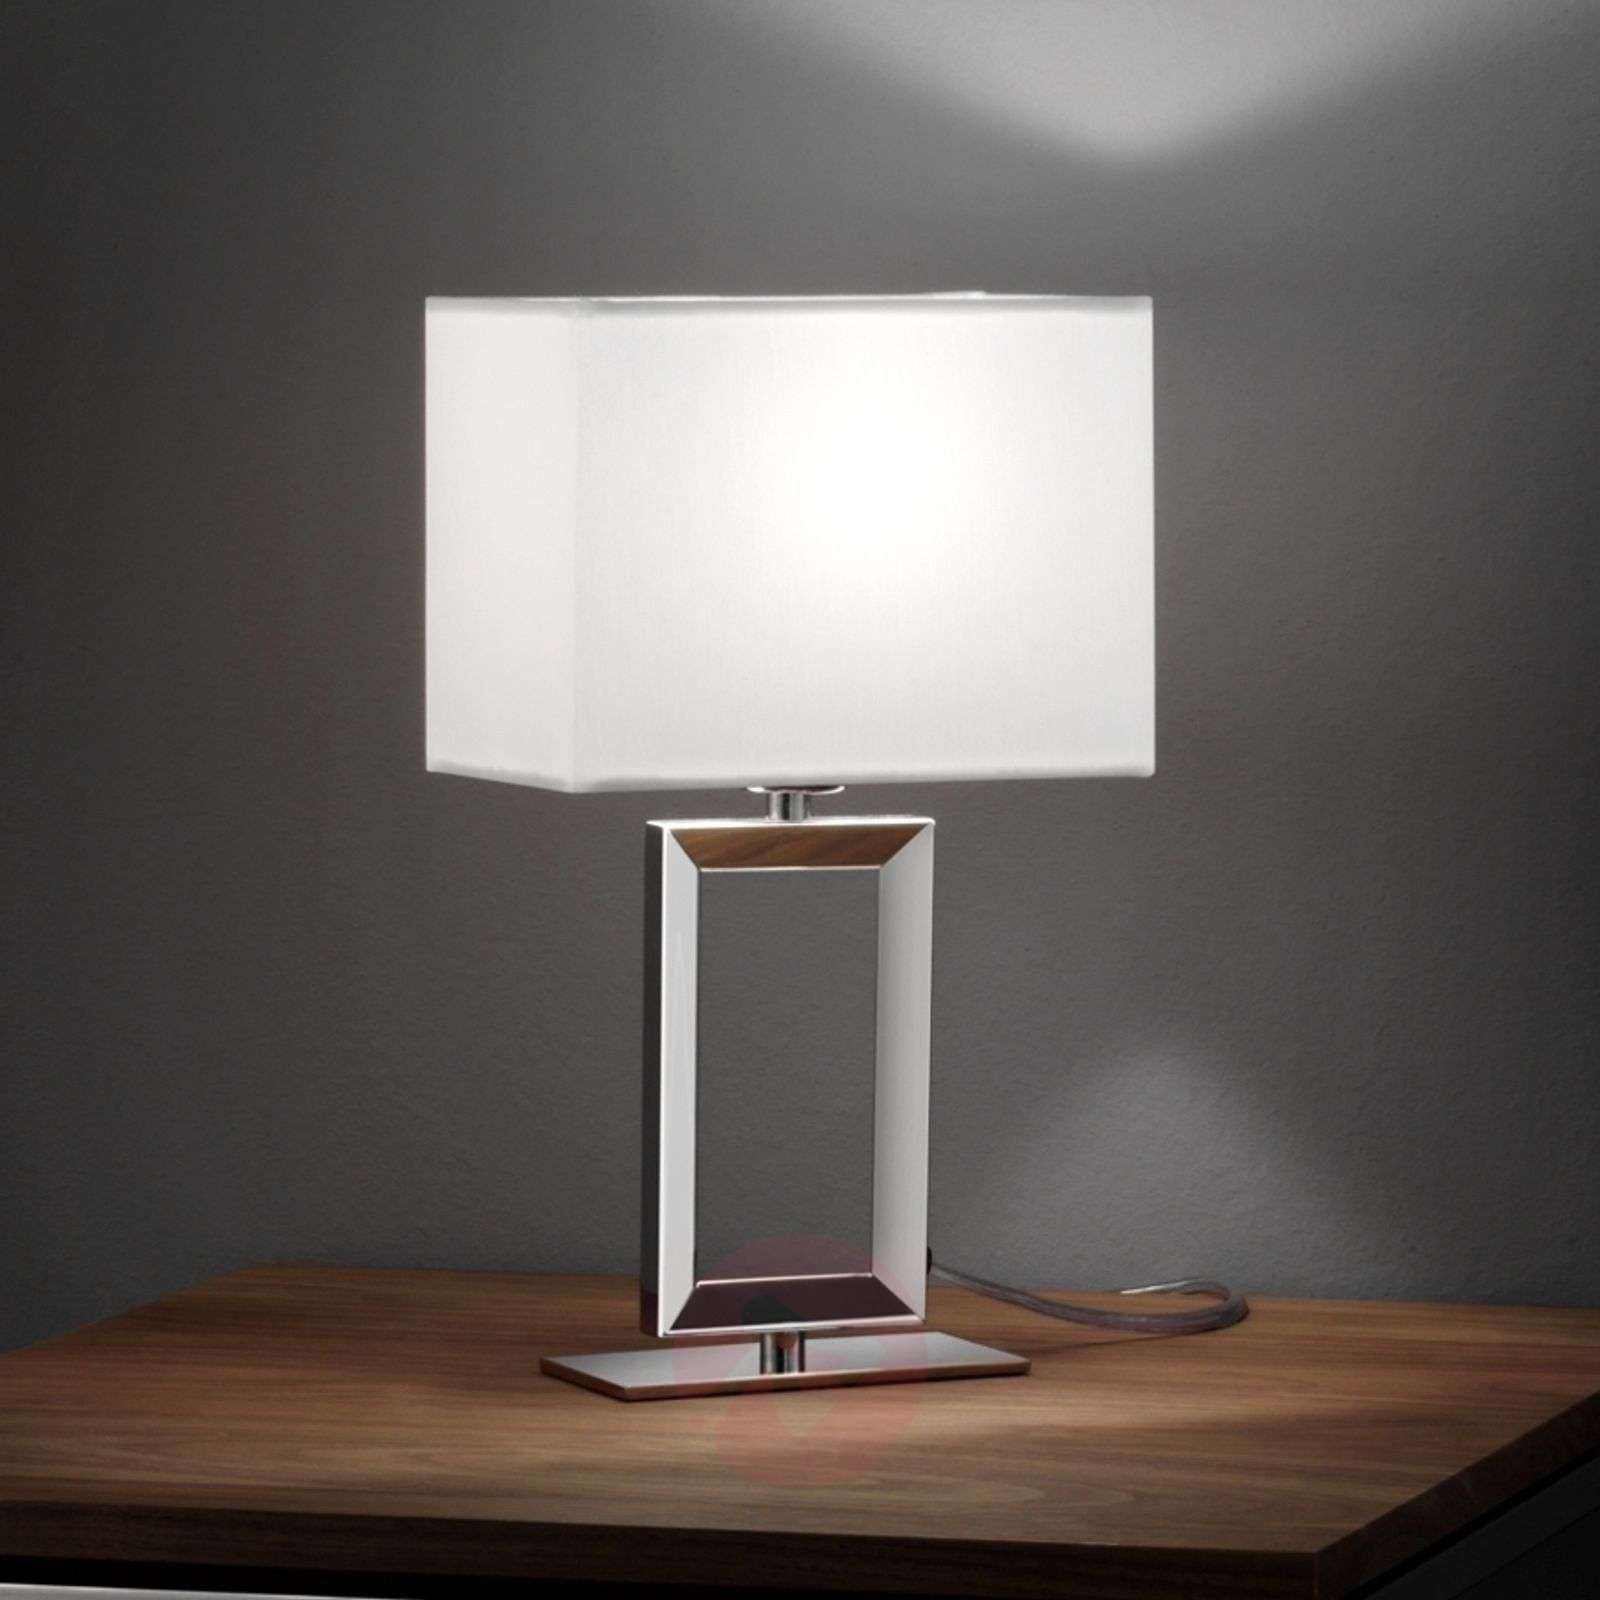 Modern table lamp ENNA 2-4516082-01